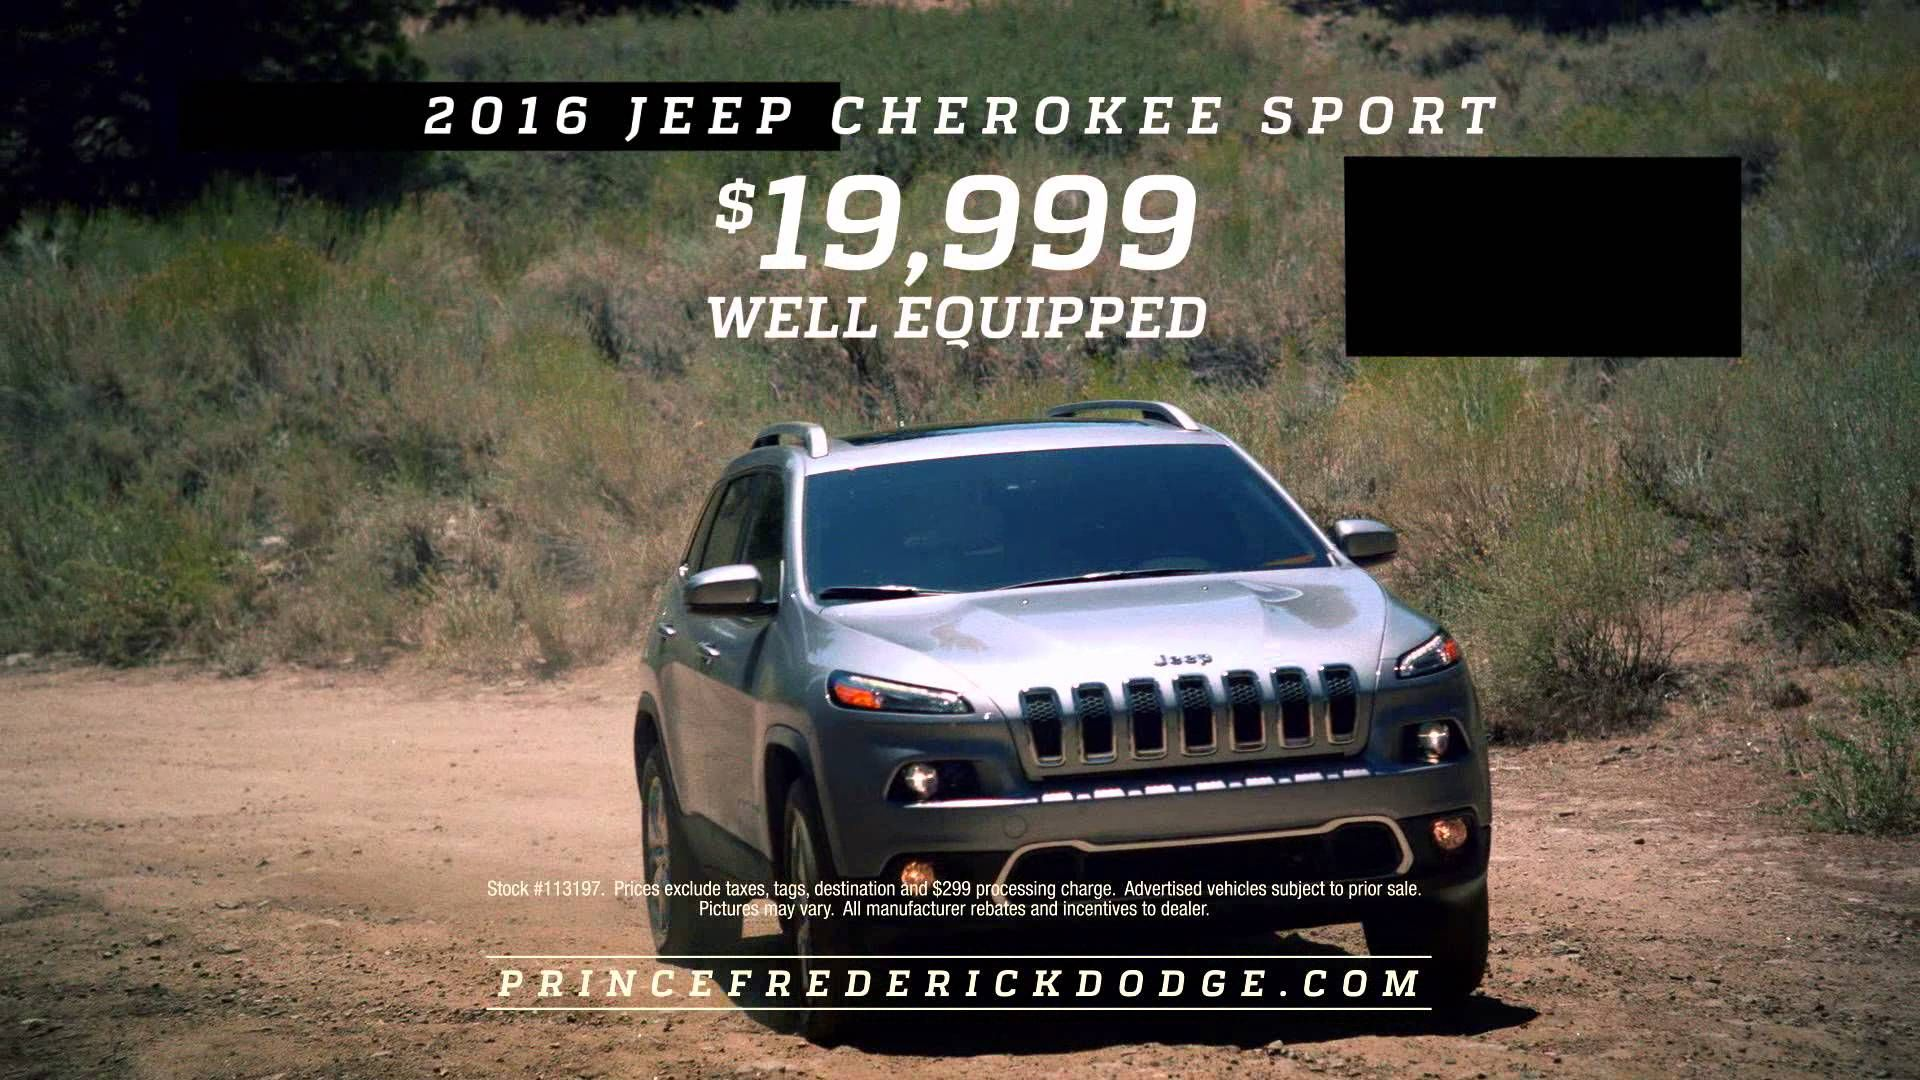 2016 Is Going To Be One Wild Ride Are You Ready Pfcjd Dodge Ram Jeep Chrysler Https Youtu Be Hgt4jh2oz3o Jeep Cherokee Sport Jeep Jeep Dodge